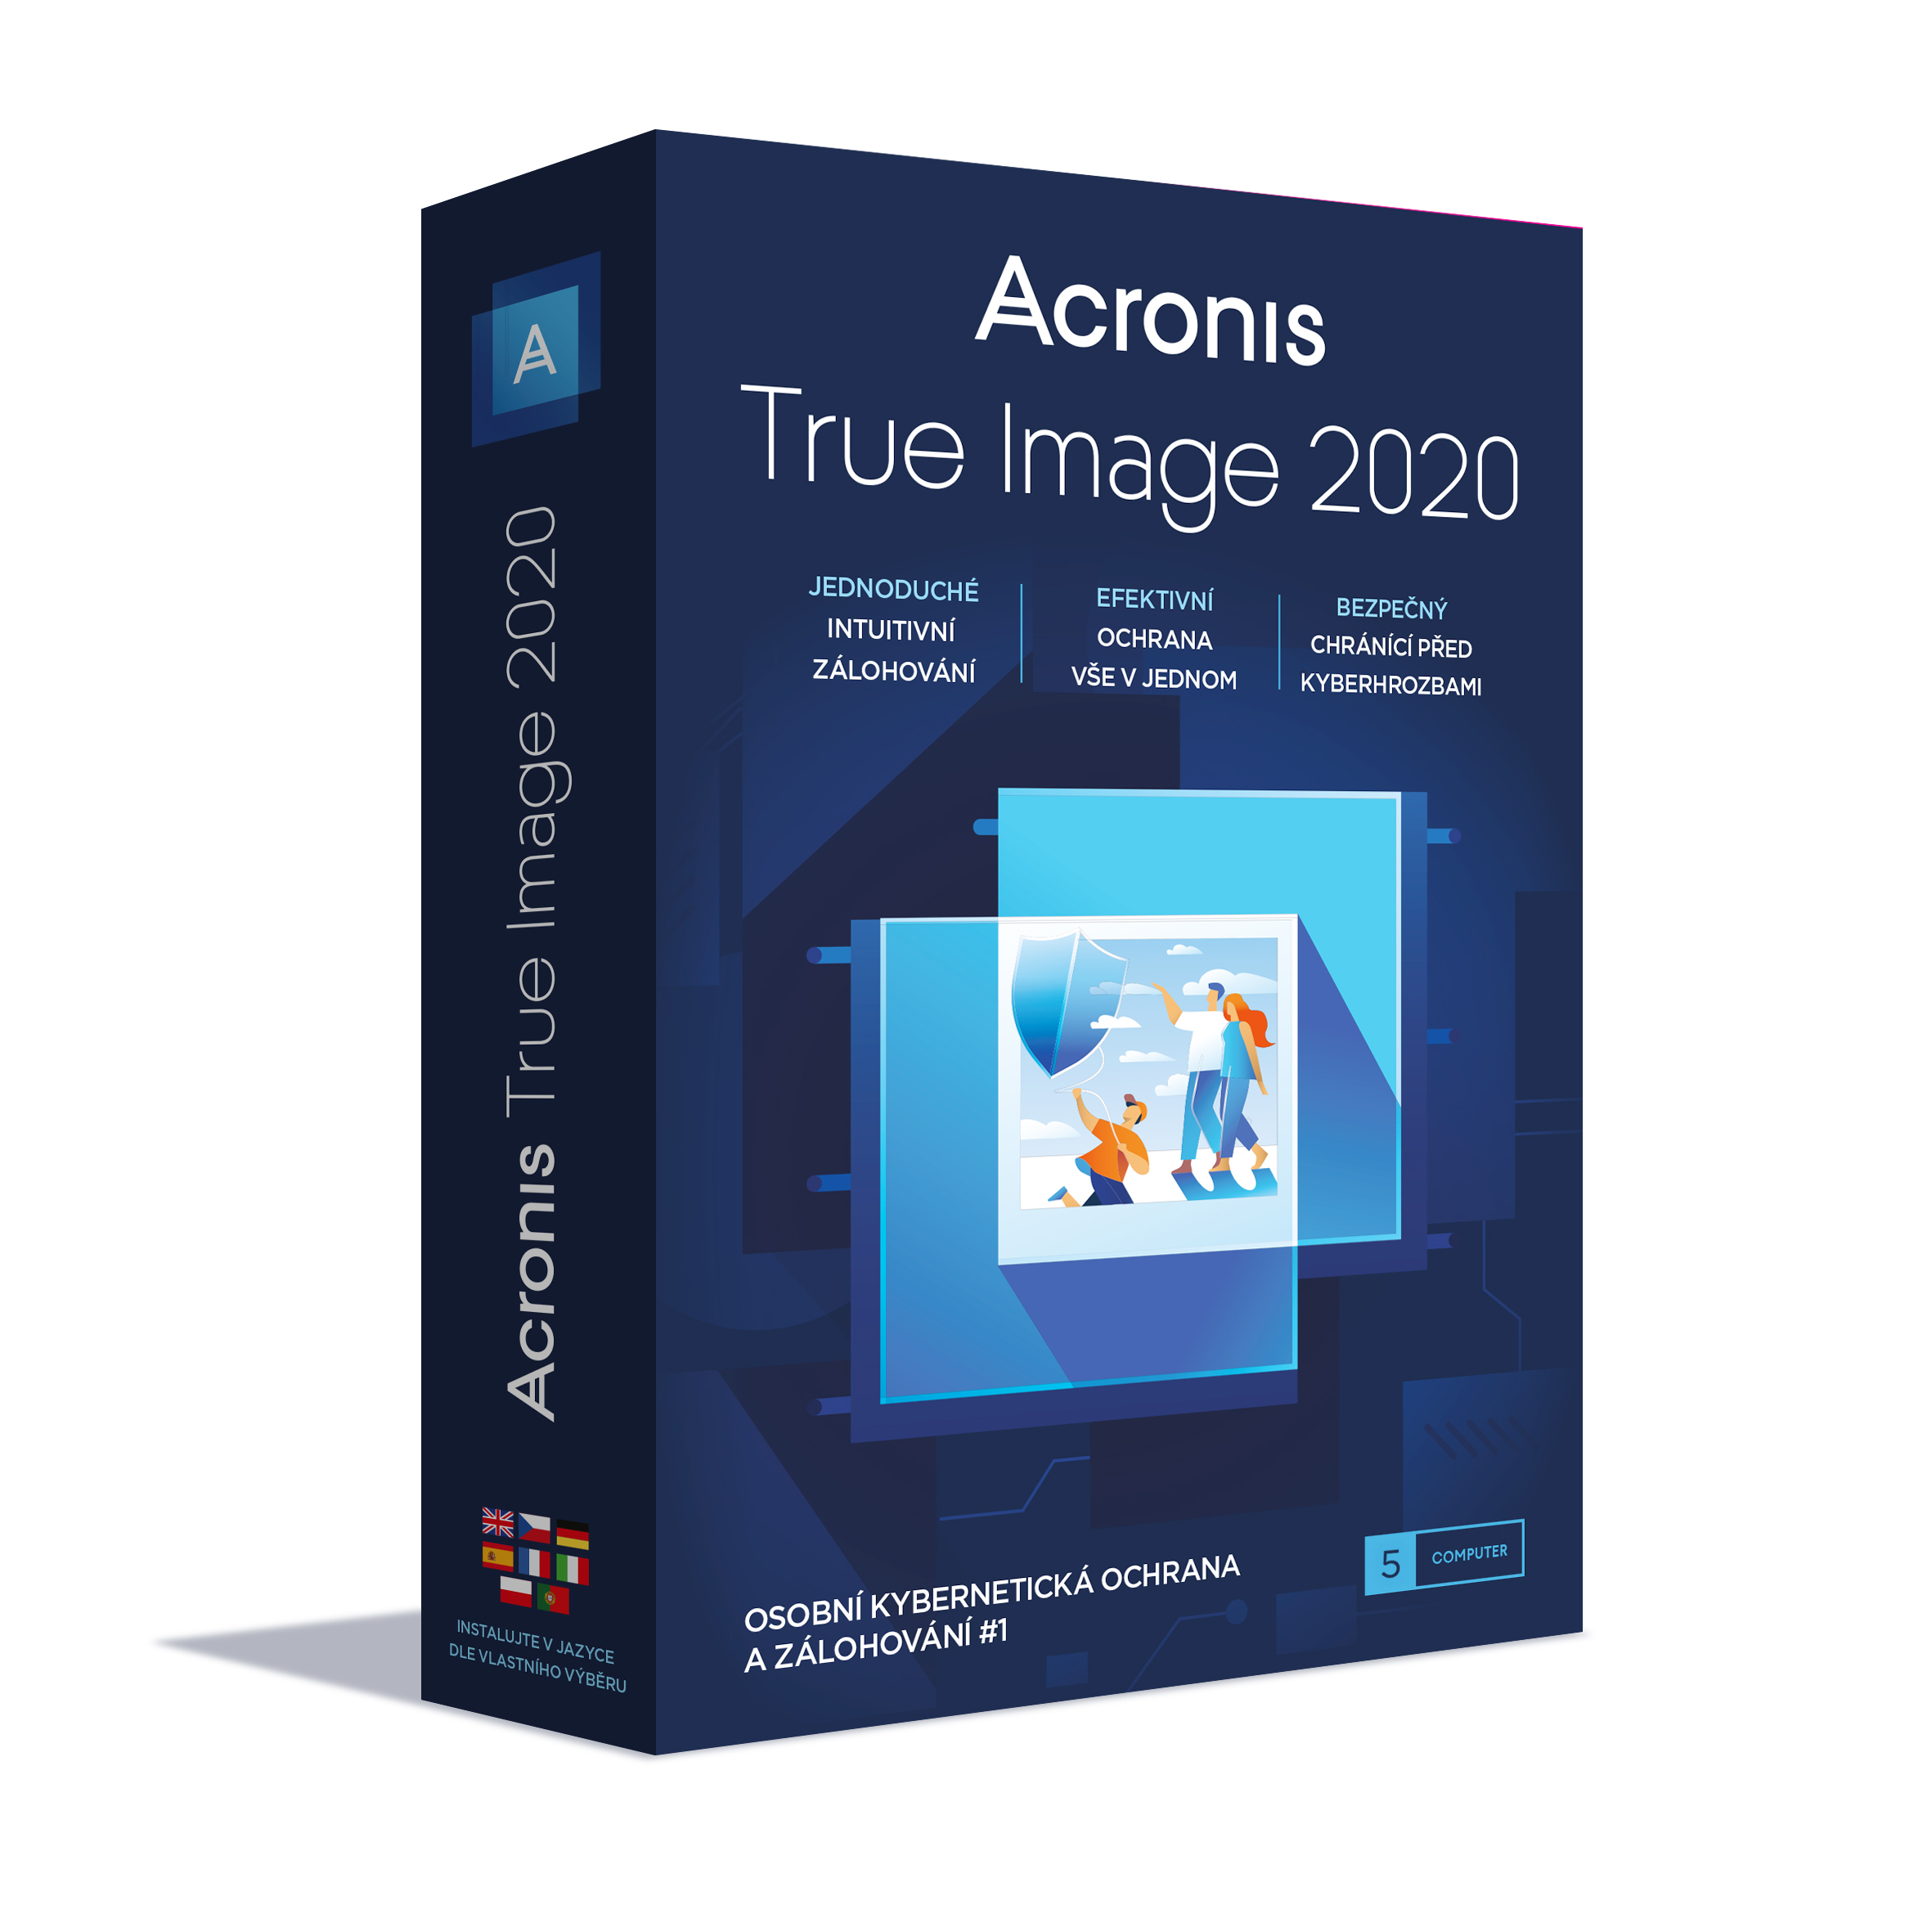 Acronis True Image 2020 - 5 Computers - BOX